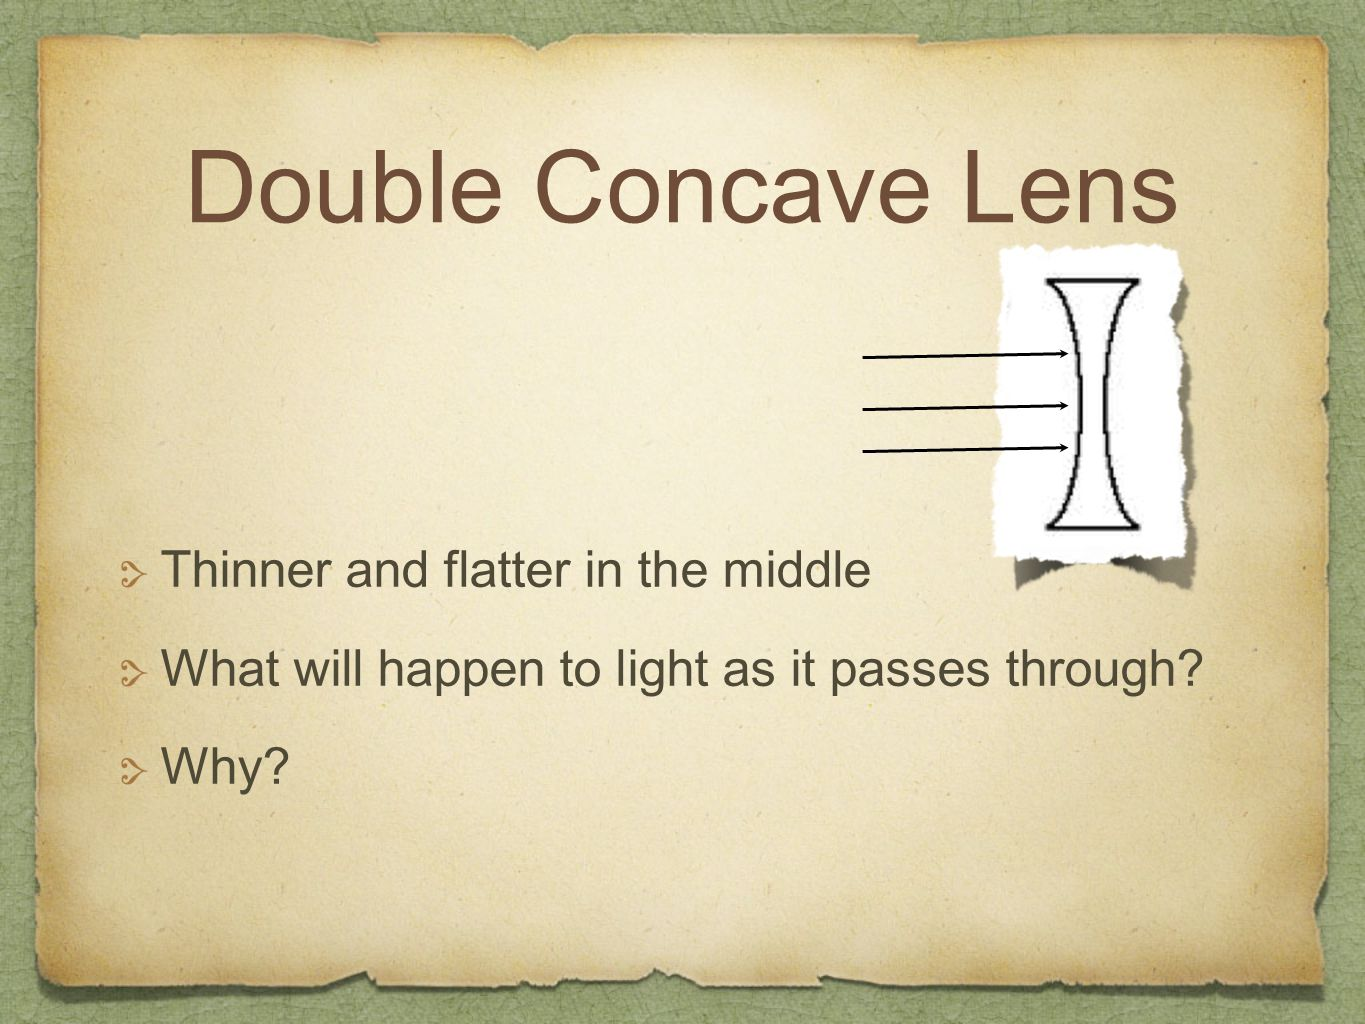 Double Concave Lens Thinner and flatter in the middle What will happen to light as it passes through? Why?